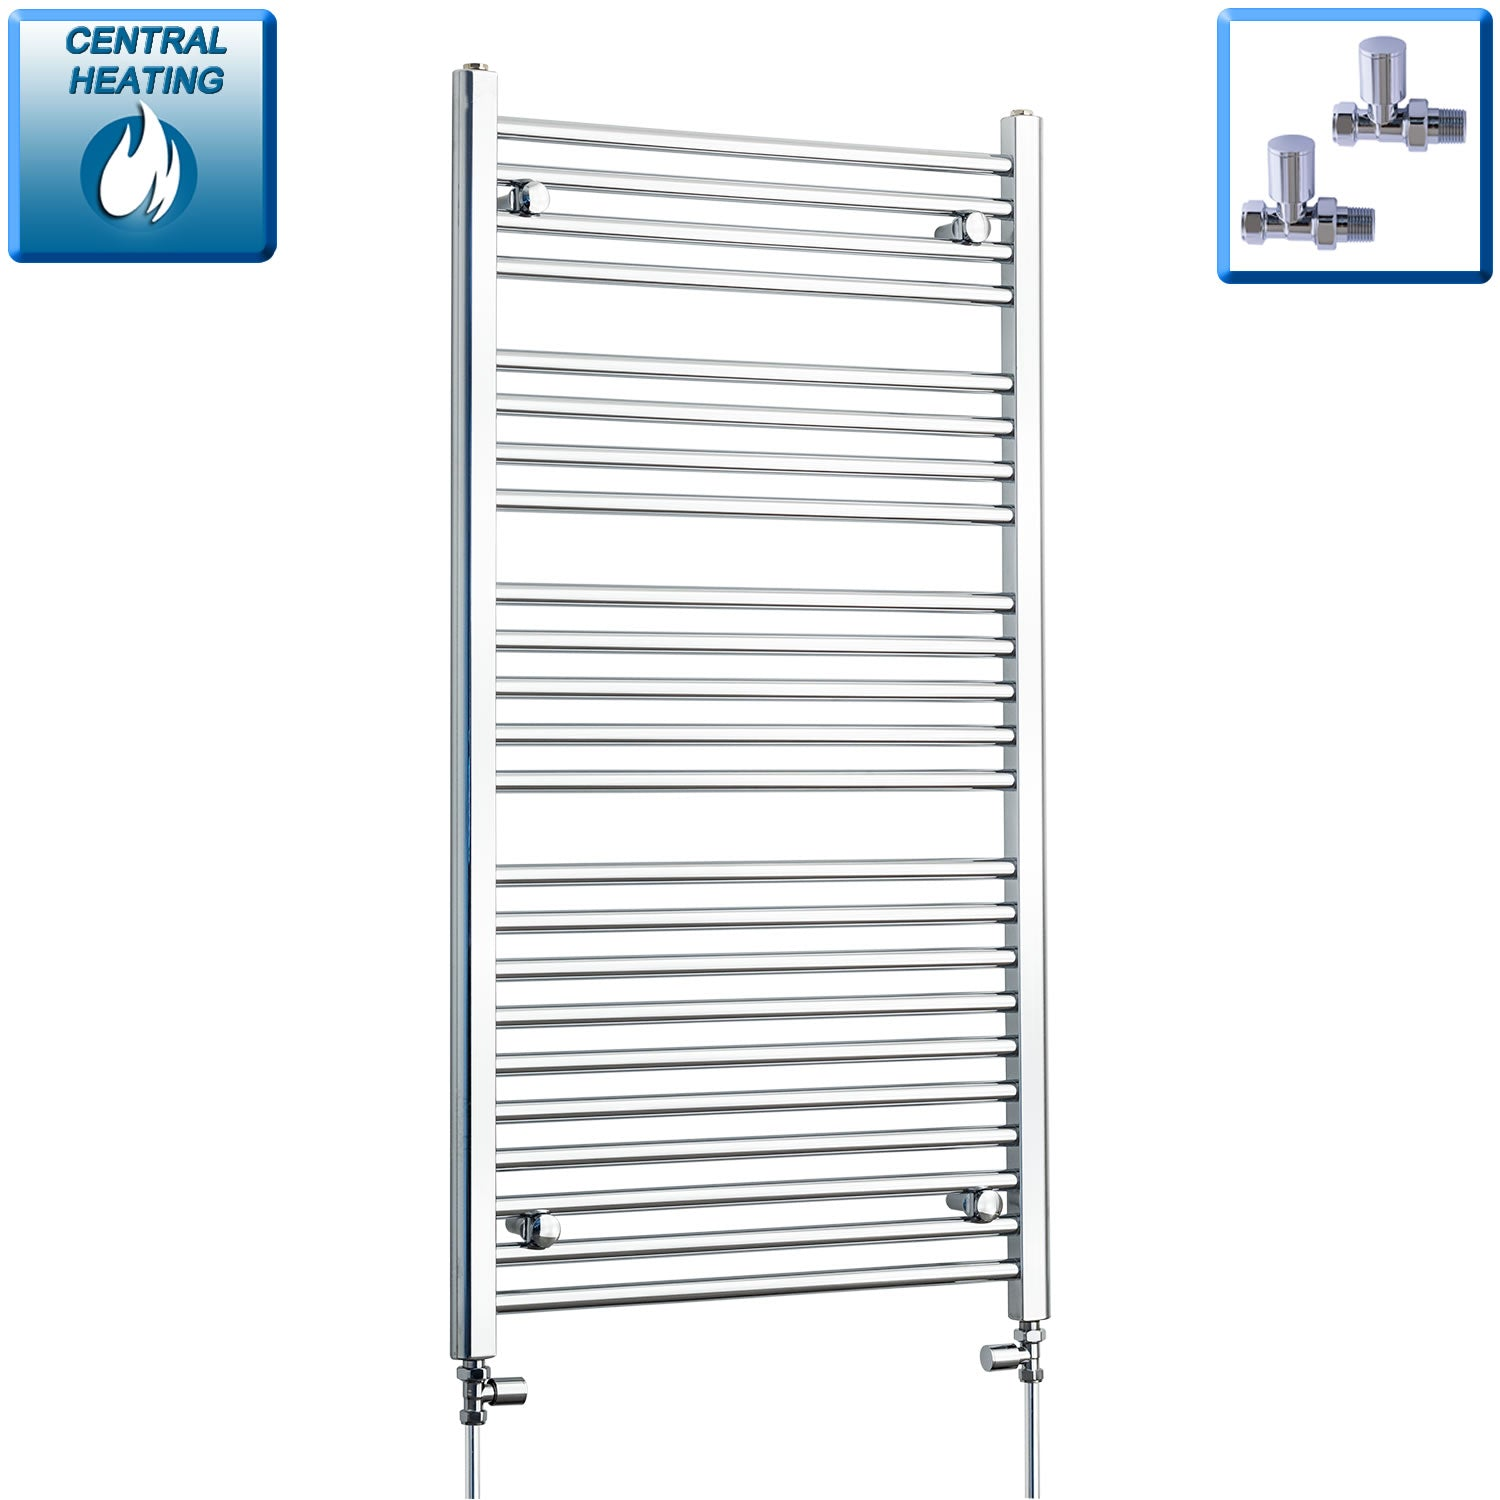 650mm Wide 1200mm High Chrome Towel Rail Radiator With Straight Valve